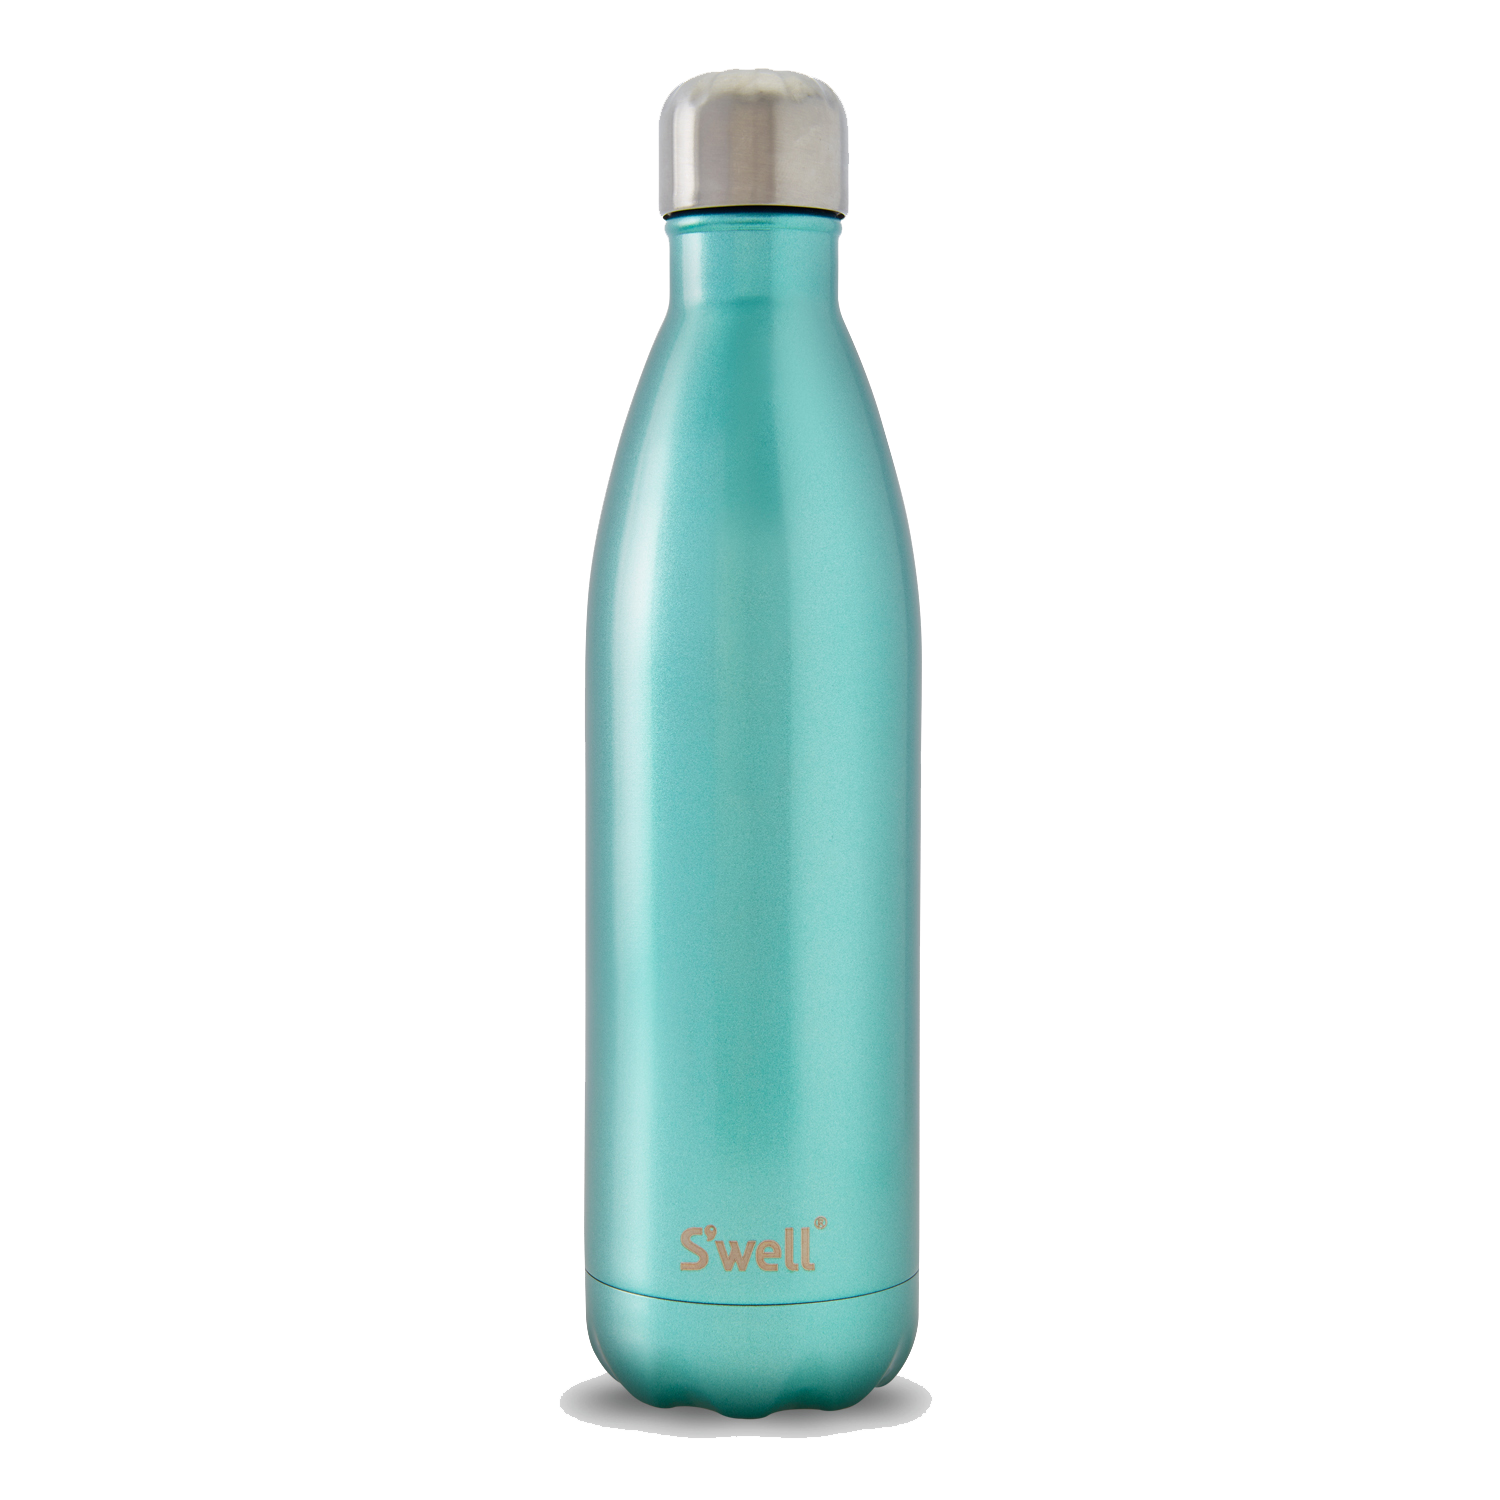 Swell water bottle png. S well sweet mint